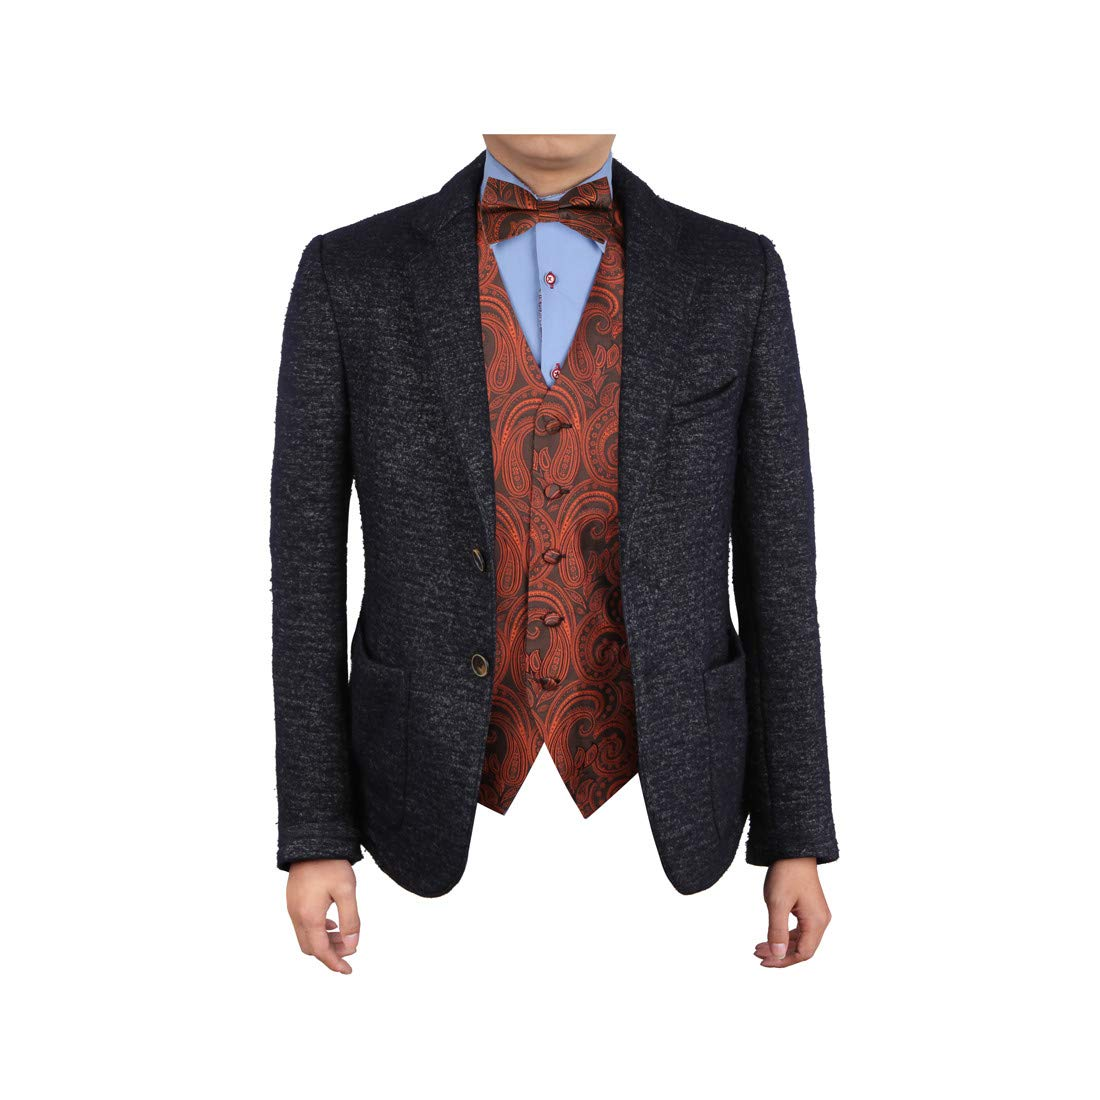 Epoint EGE1B07C-3XL Red Black Patterns Microfiber Vest and Pre-tied Bow Tie Gift Idea For Waistcoat